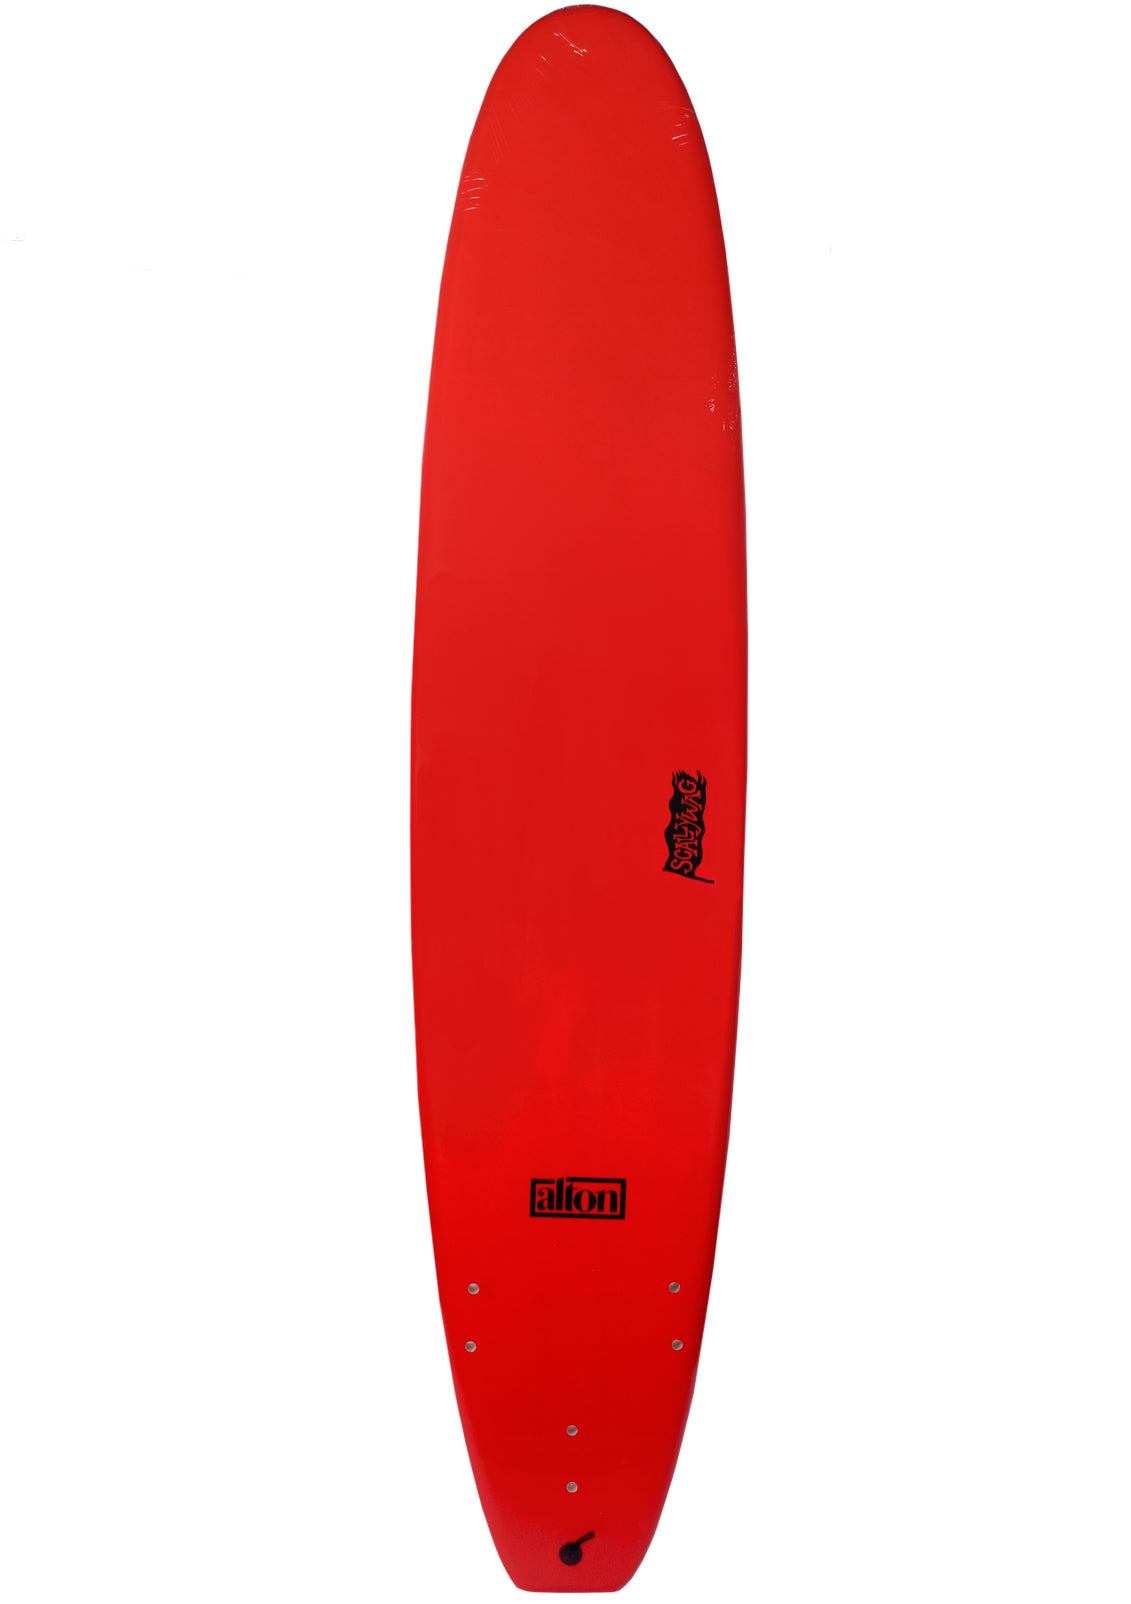 Alton Scallywag Softboard 9'0